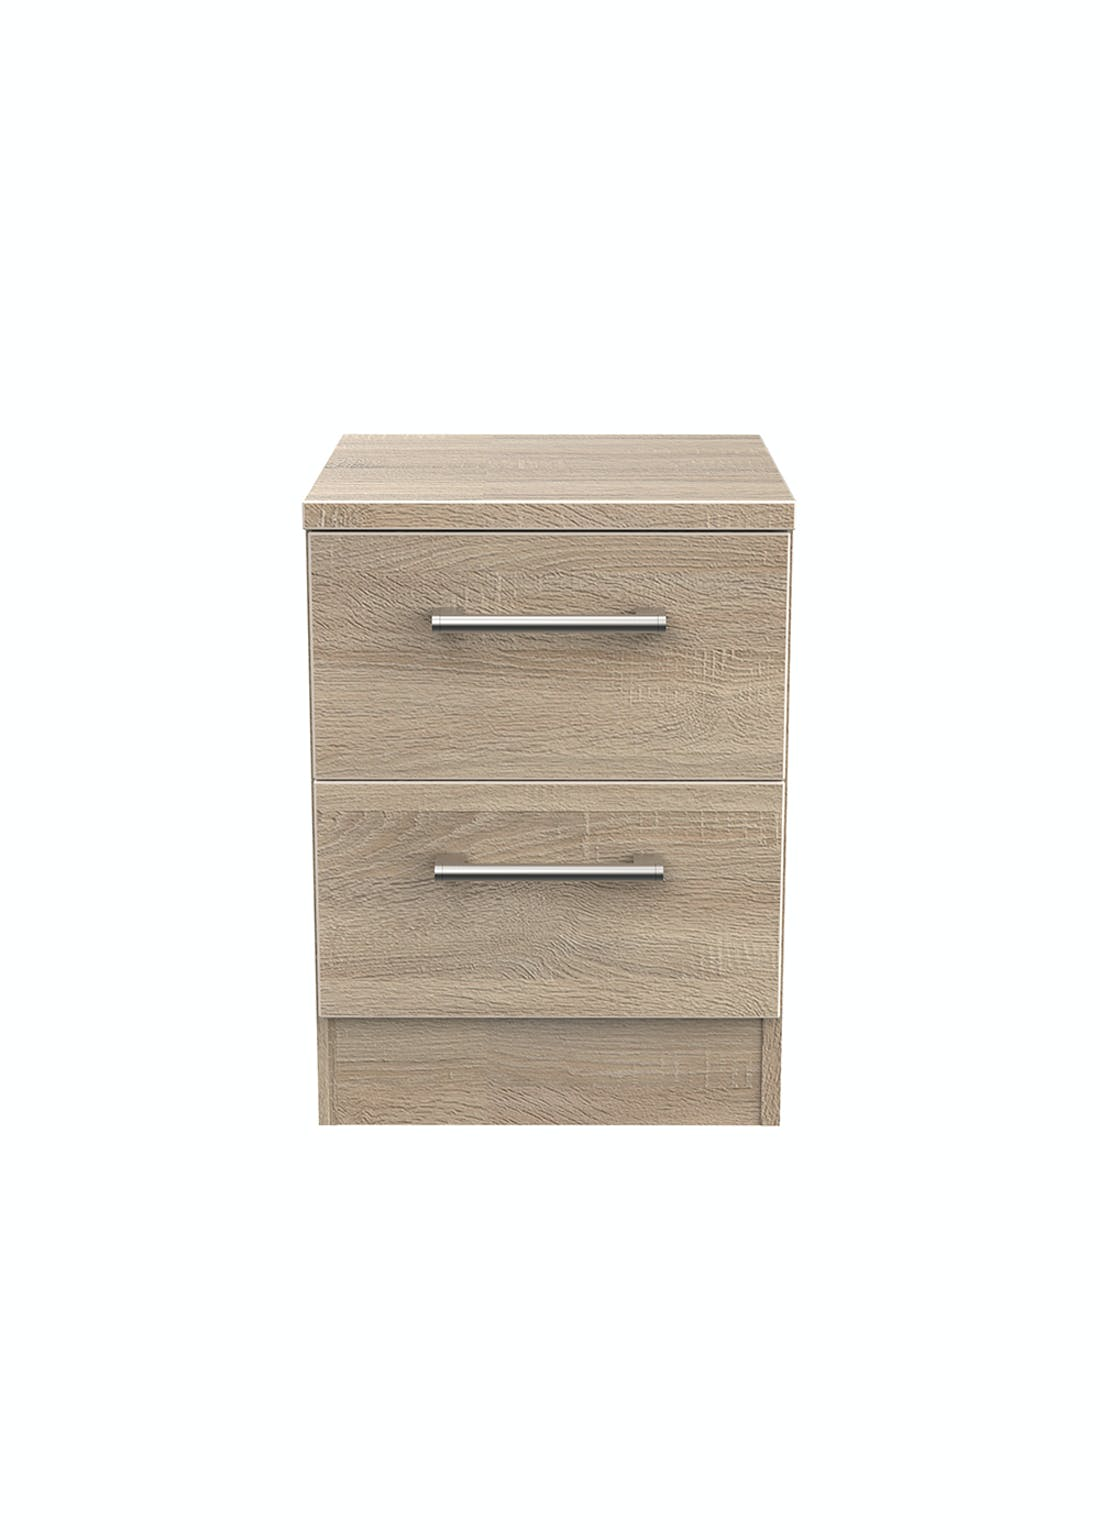 Swift Bari 2 Drawer Bedside Table (50.5cm x 39.5cm x 41.5cm)